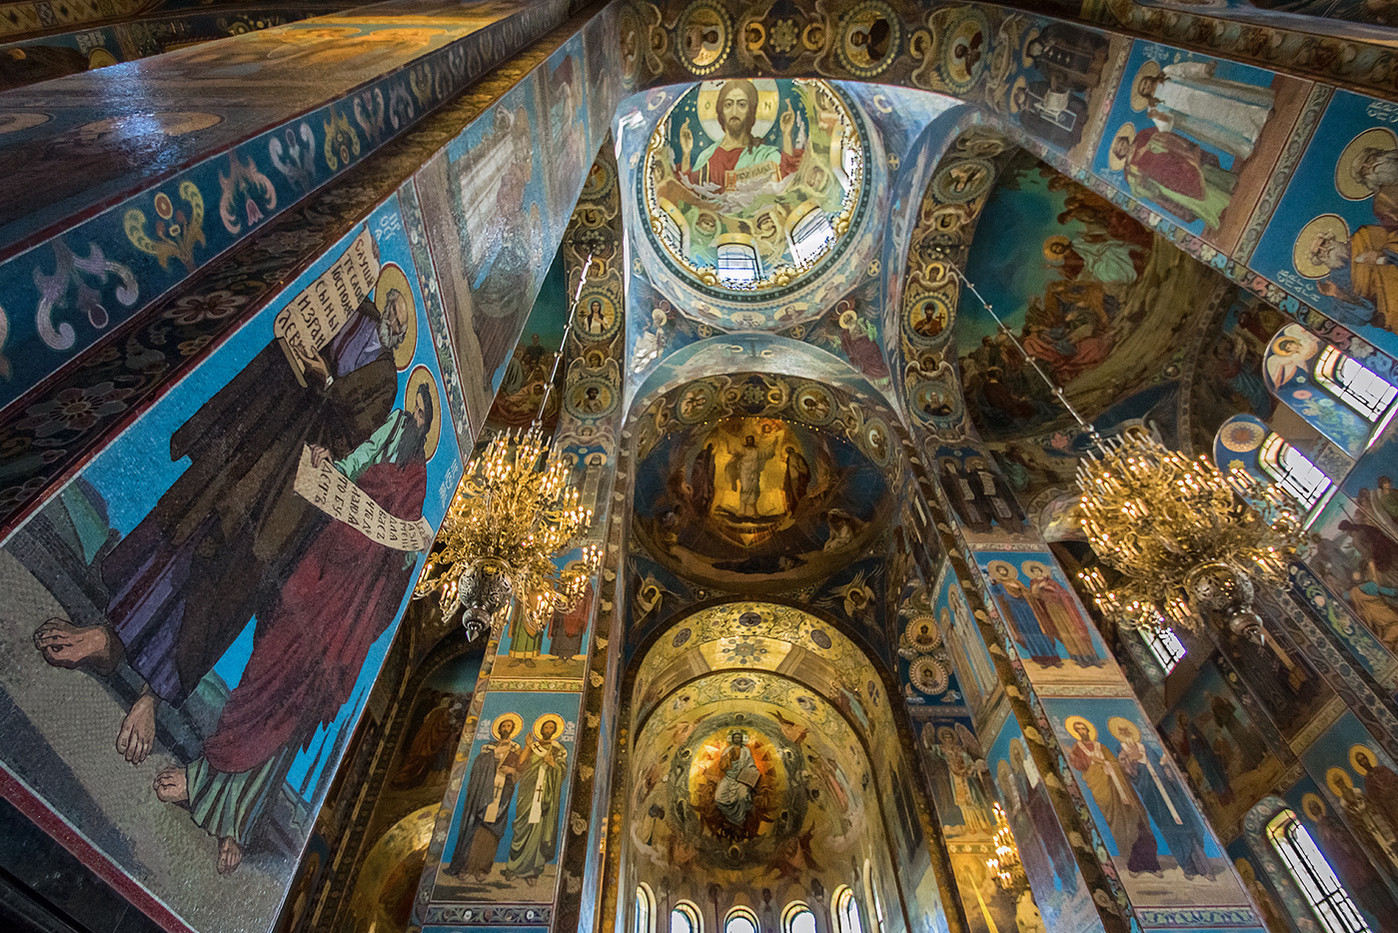 14 CHURCH OF THE SPILLED BLOOD by Pam Sherren